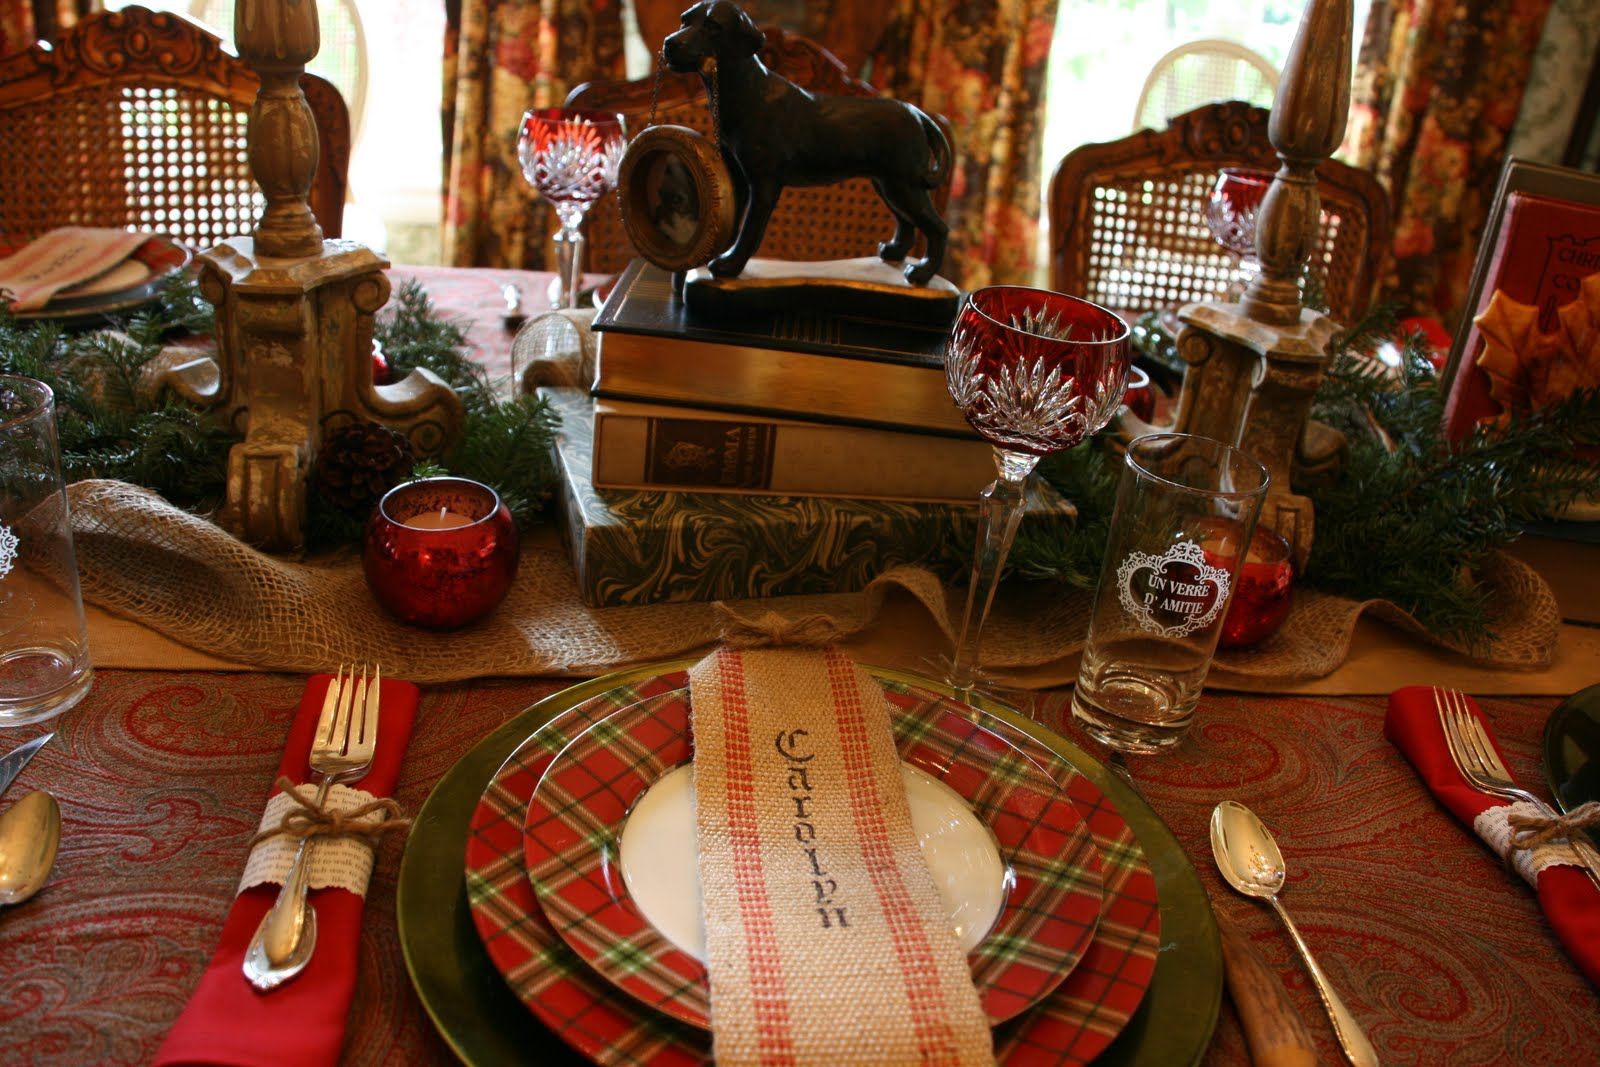 vignette design: end of year book club dinner- a tablescape